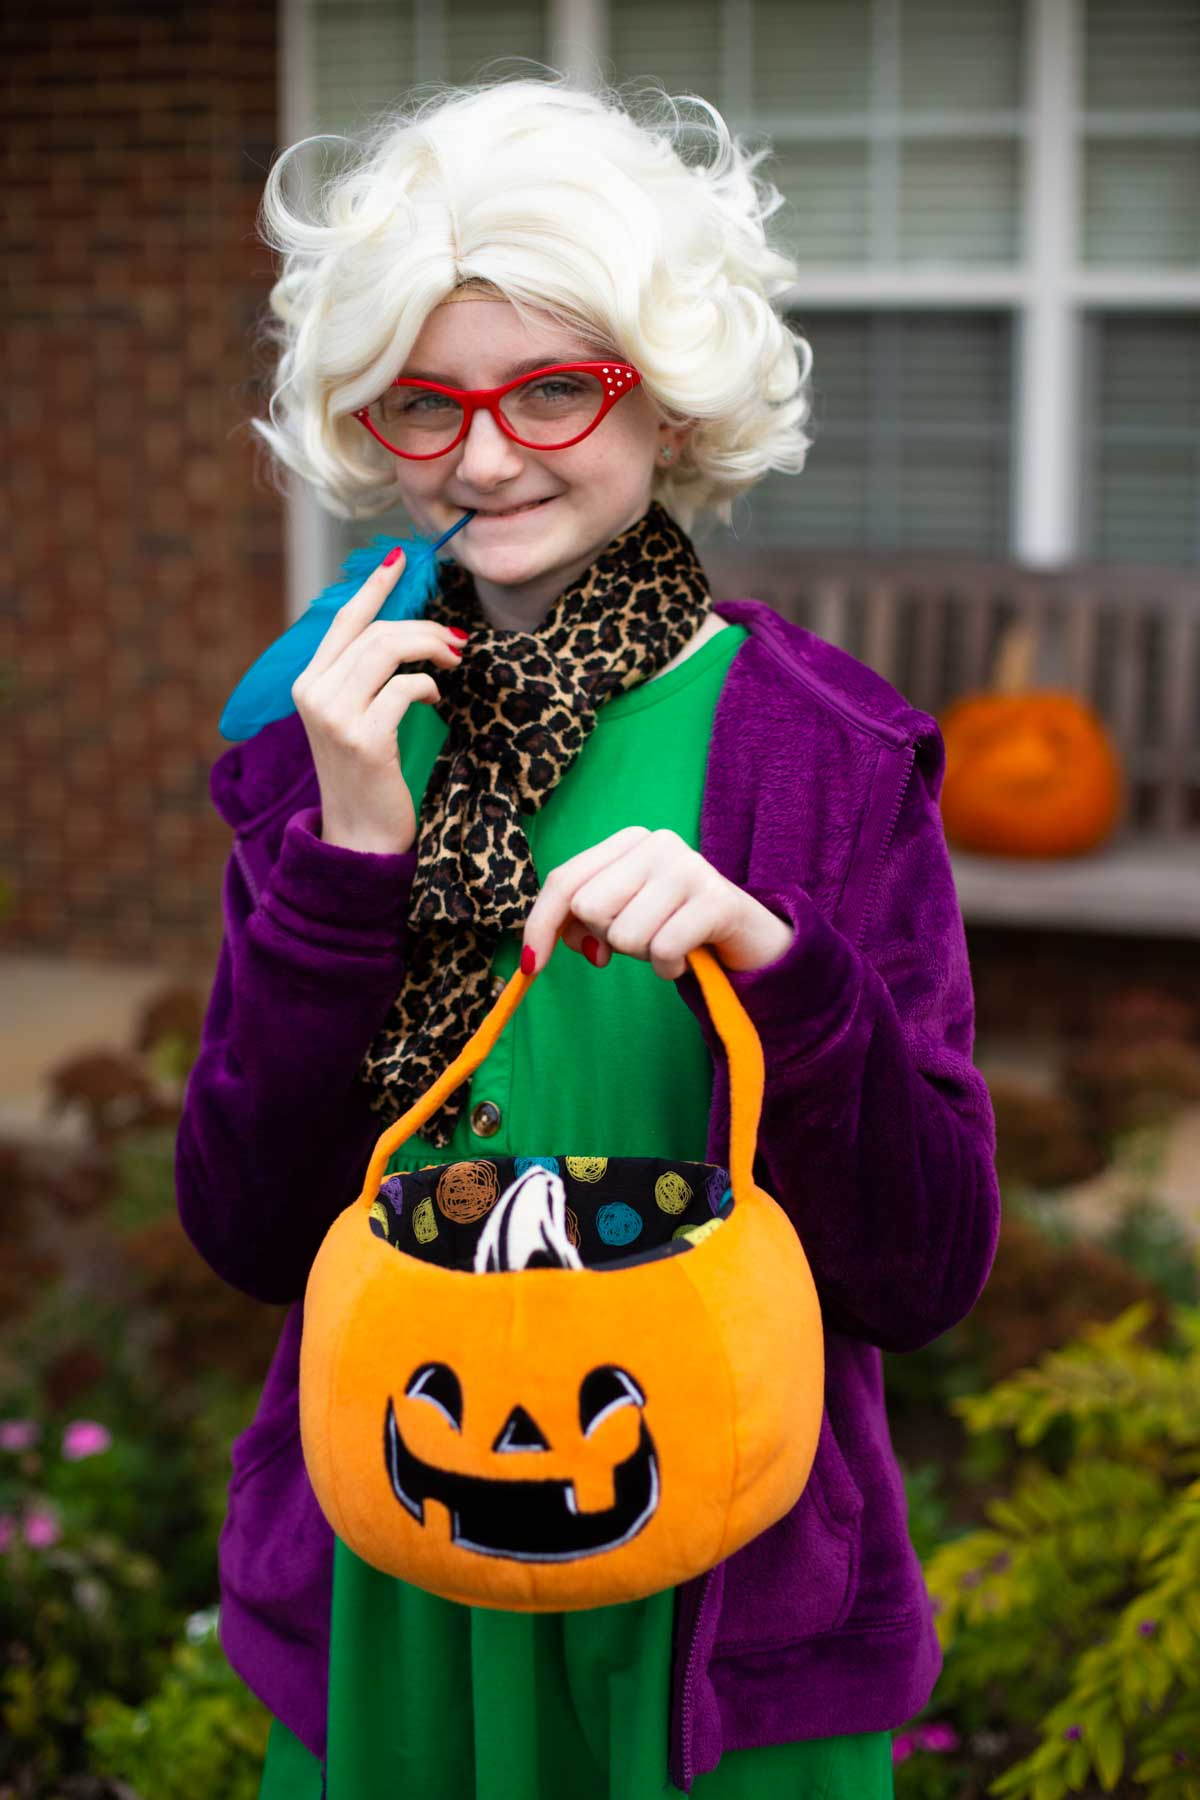 A young girl is wearing a Rita Skeeter wig, a green dress, a purple hoodie, and holding a pumpkin bag.